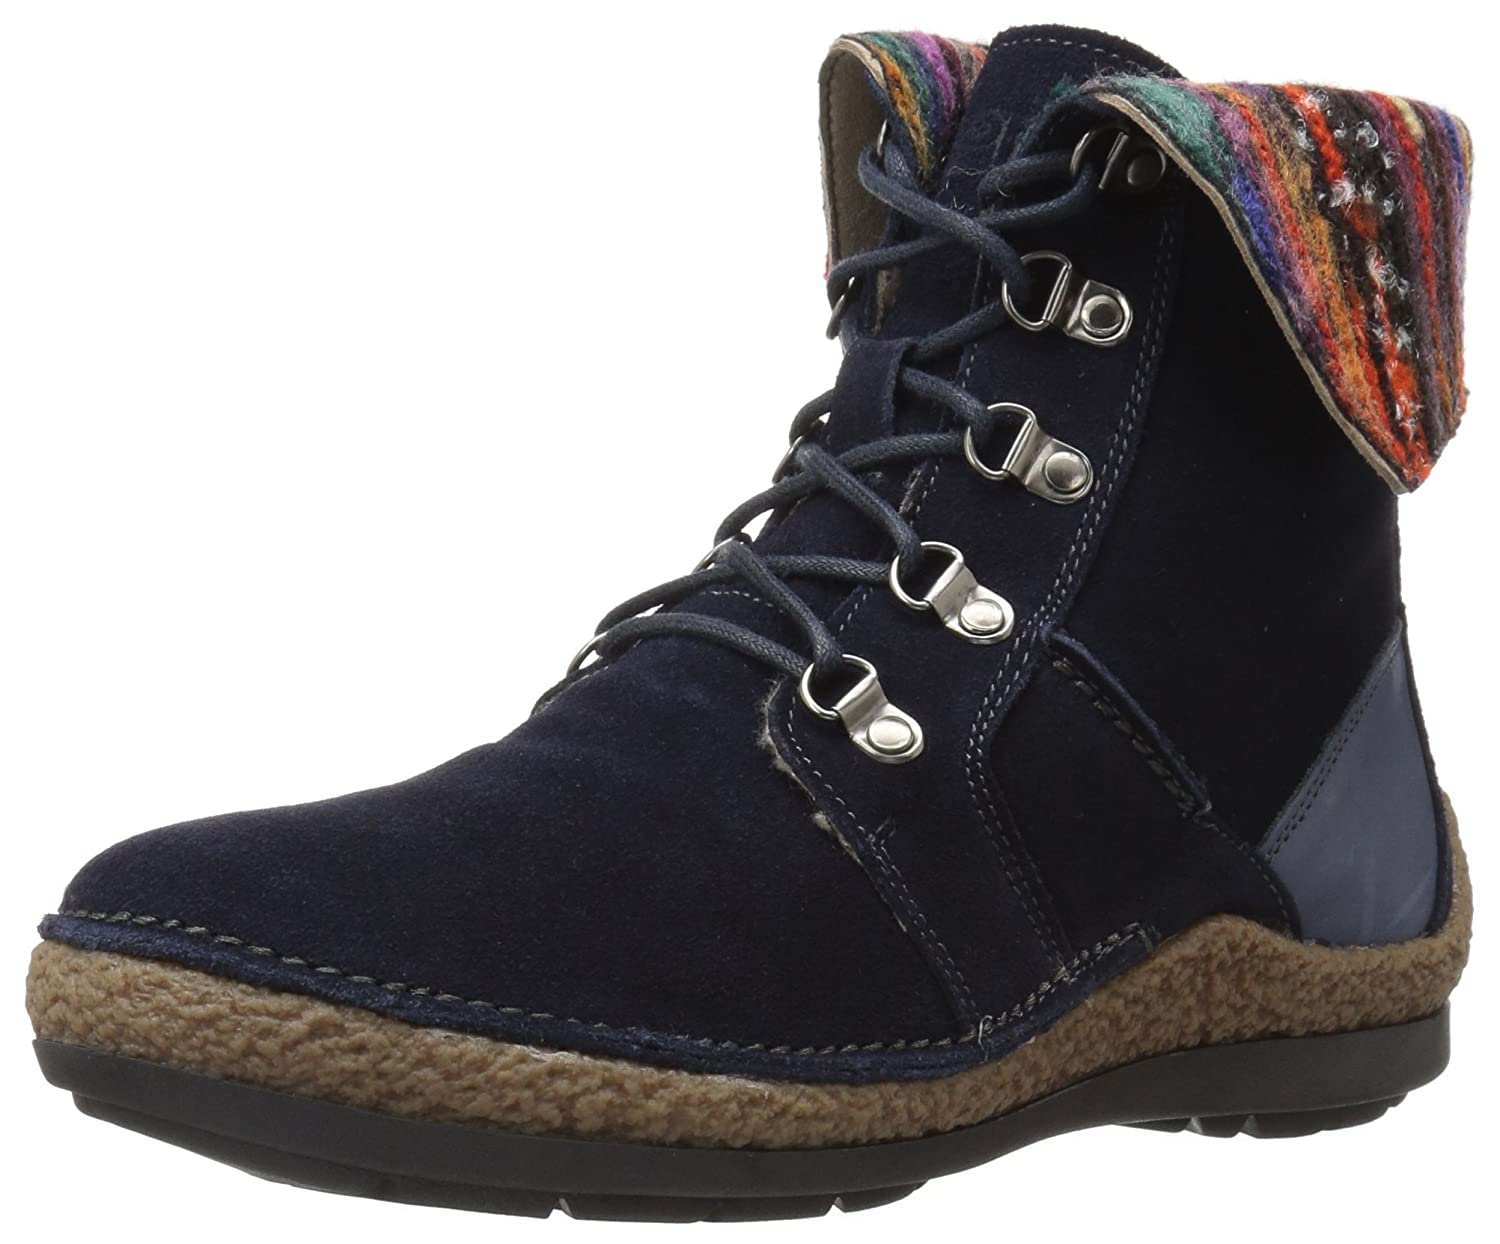 Propet Women's Dayna Ankle Bootie B06XRMBRHR 8 B(M) US|Navy